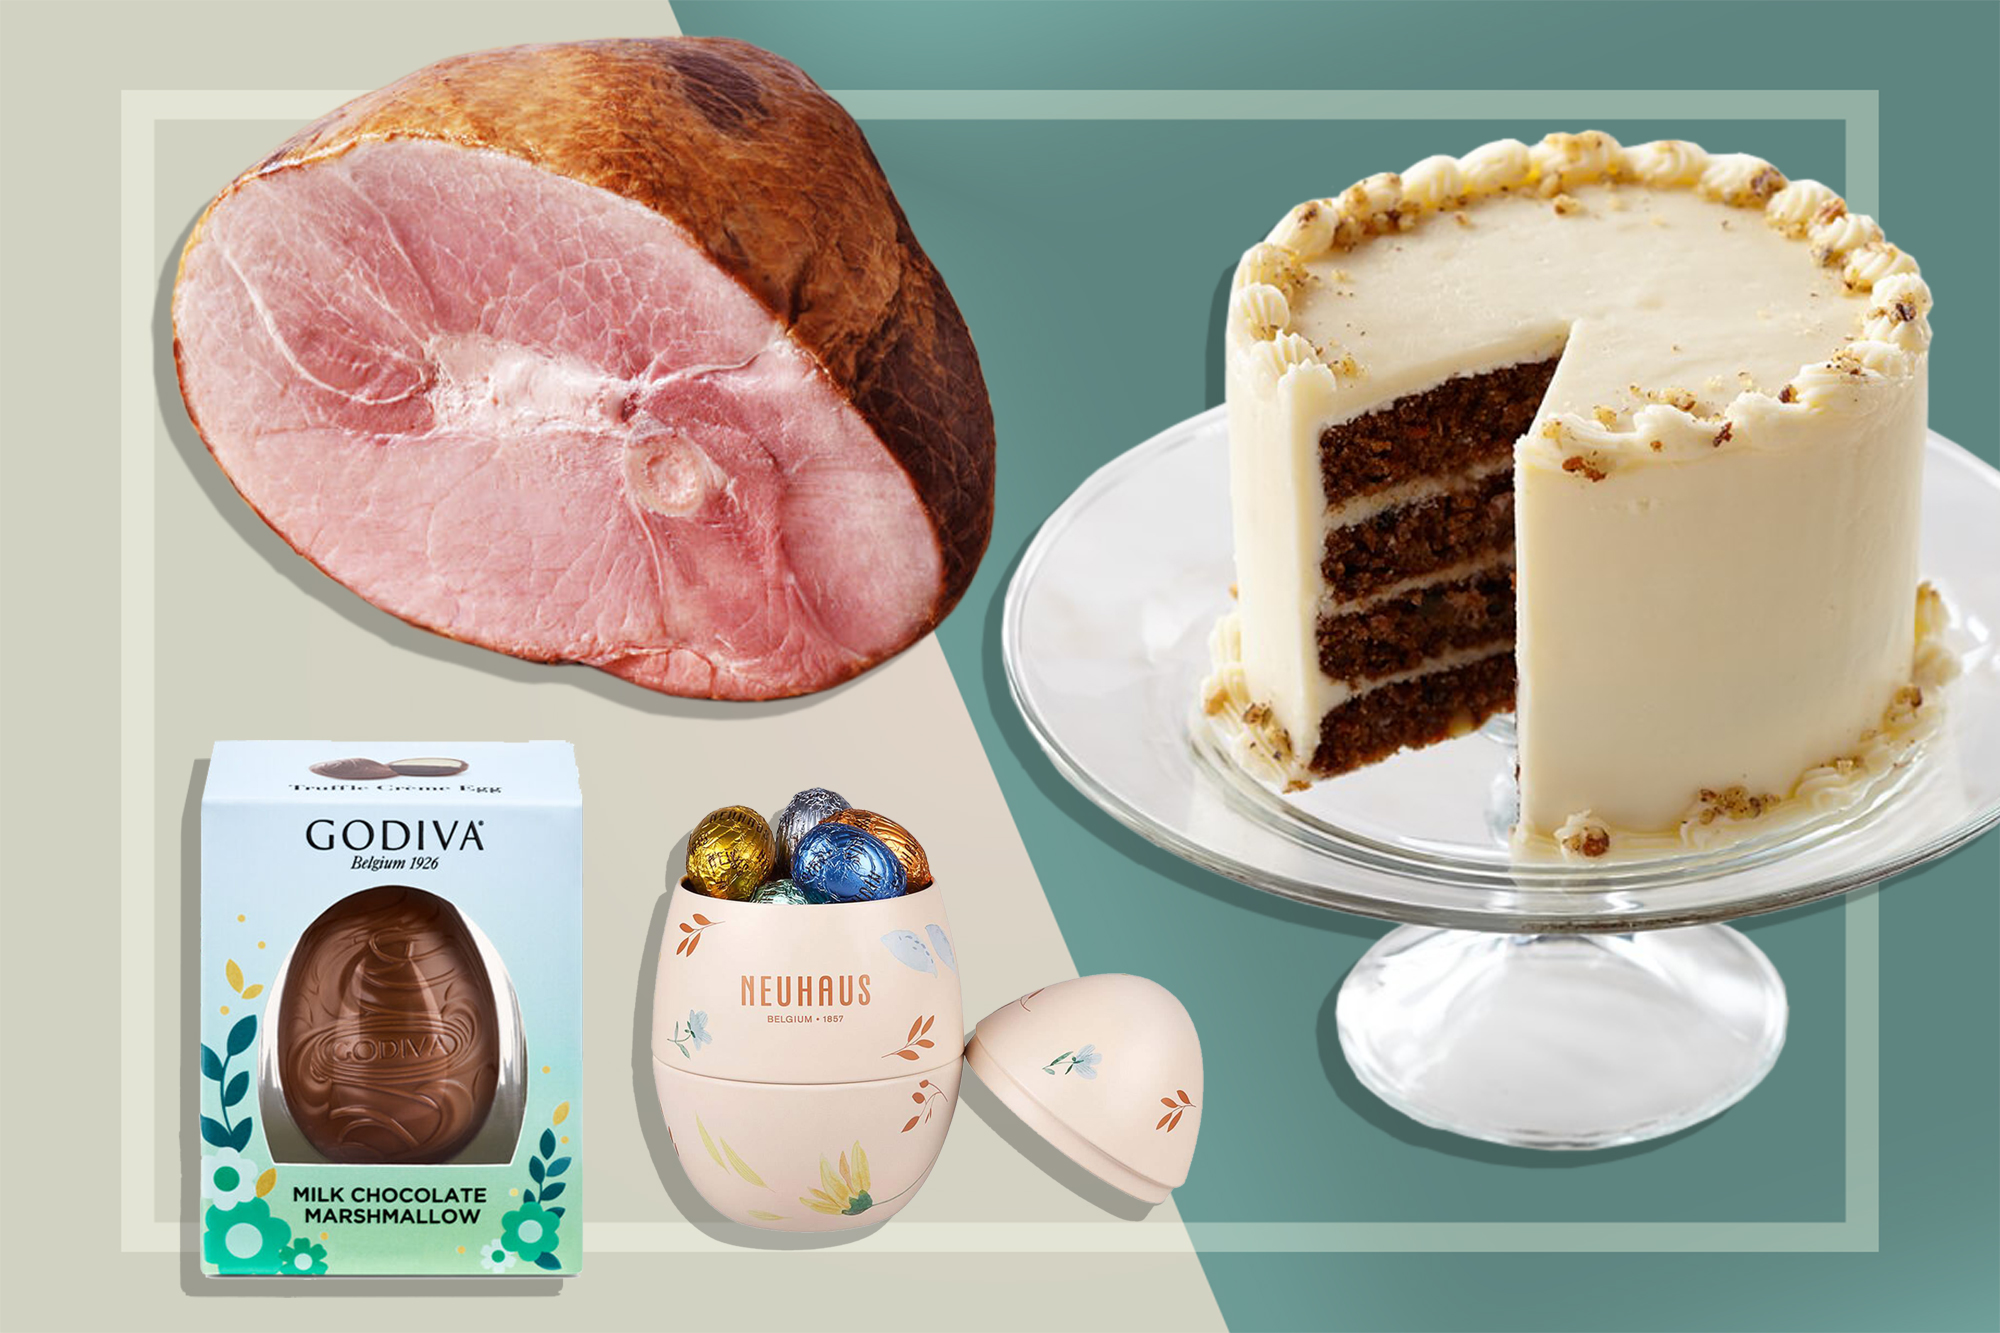 10 Great Options for Ordering Easter Food Online